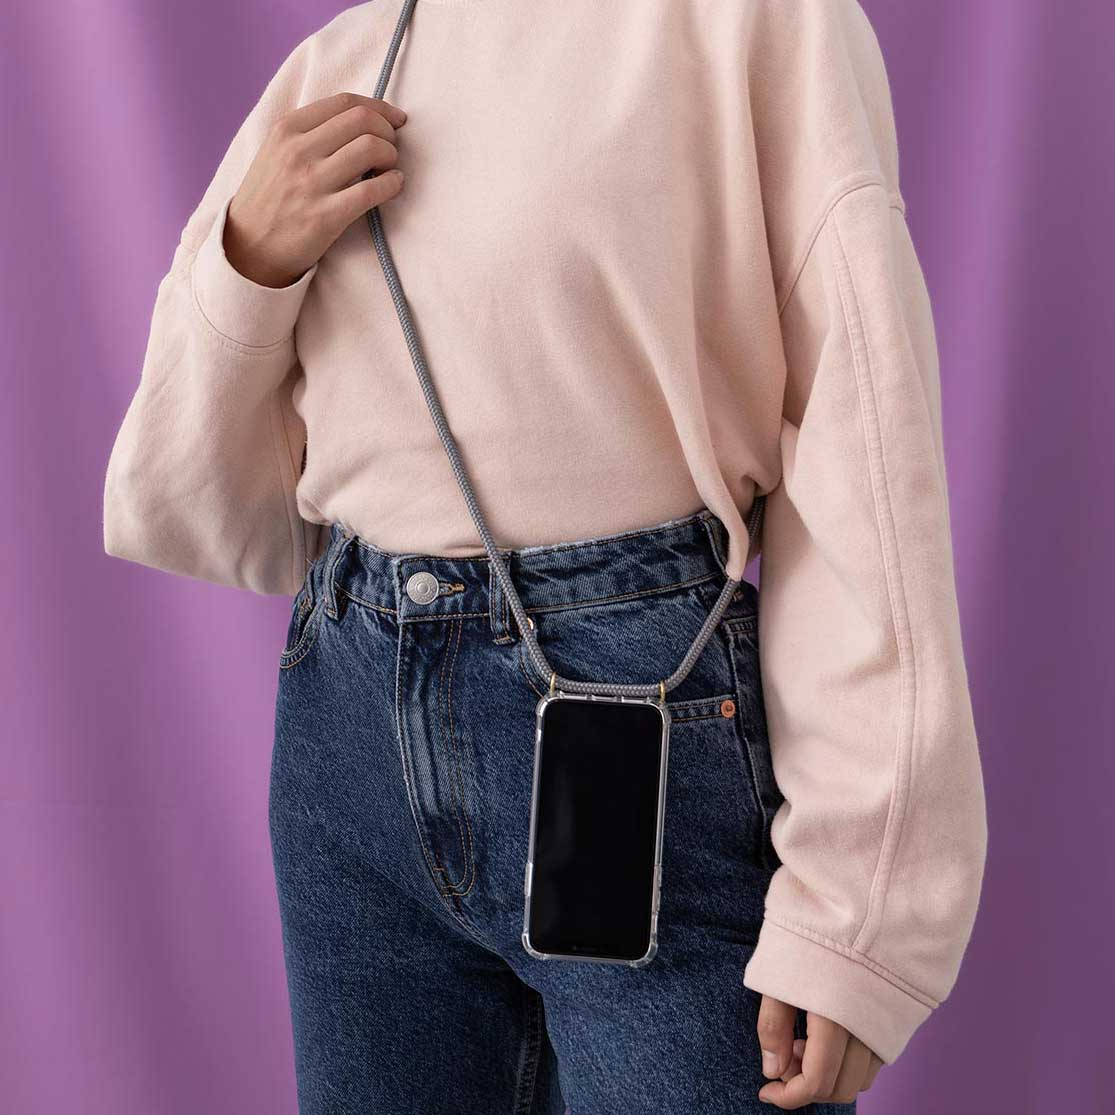 Model is wearing a Grey KNOK CASE Custom phone necklace, standing in front of a lilac background